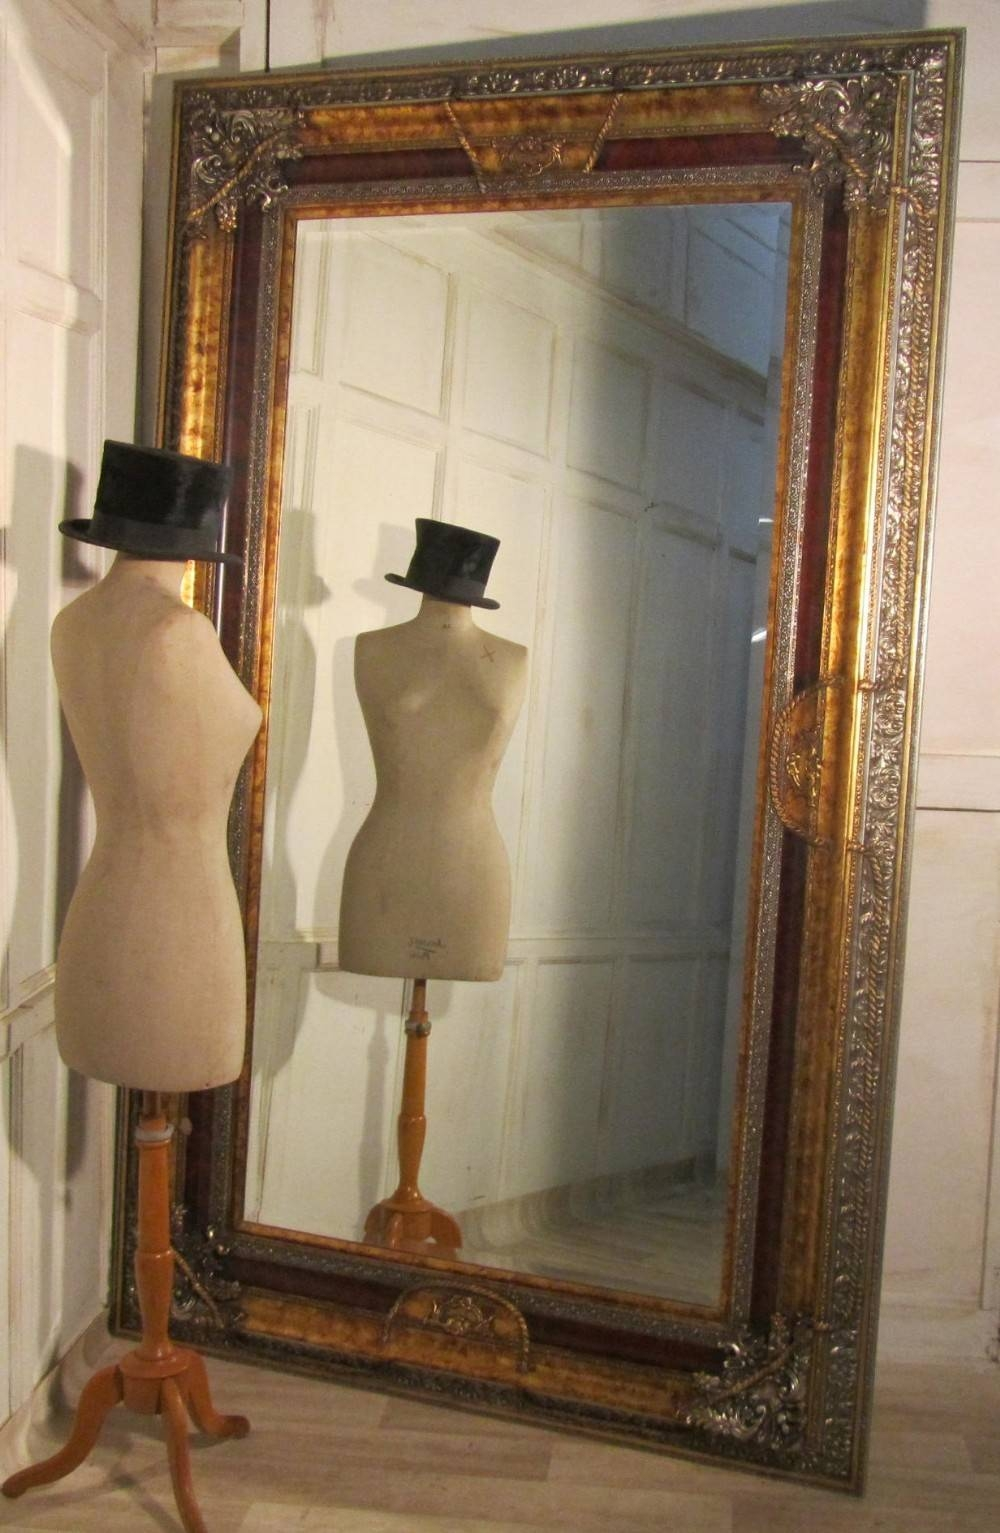 Large Wall Mirrors Tips To Place The Mirror In The Right Style And inside Large Artistic Mirrors (Image 9 of 15)